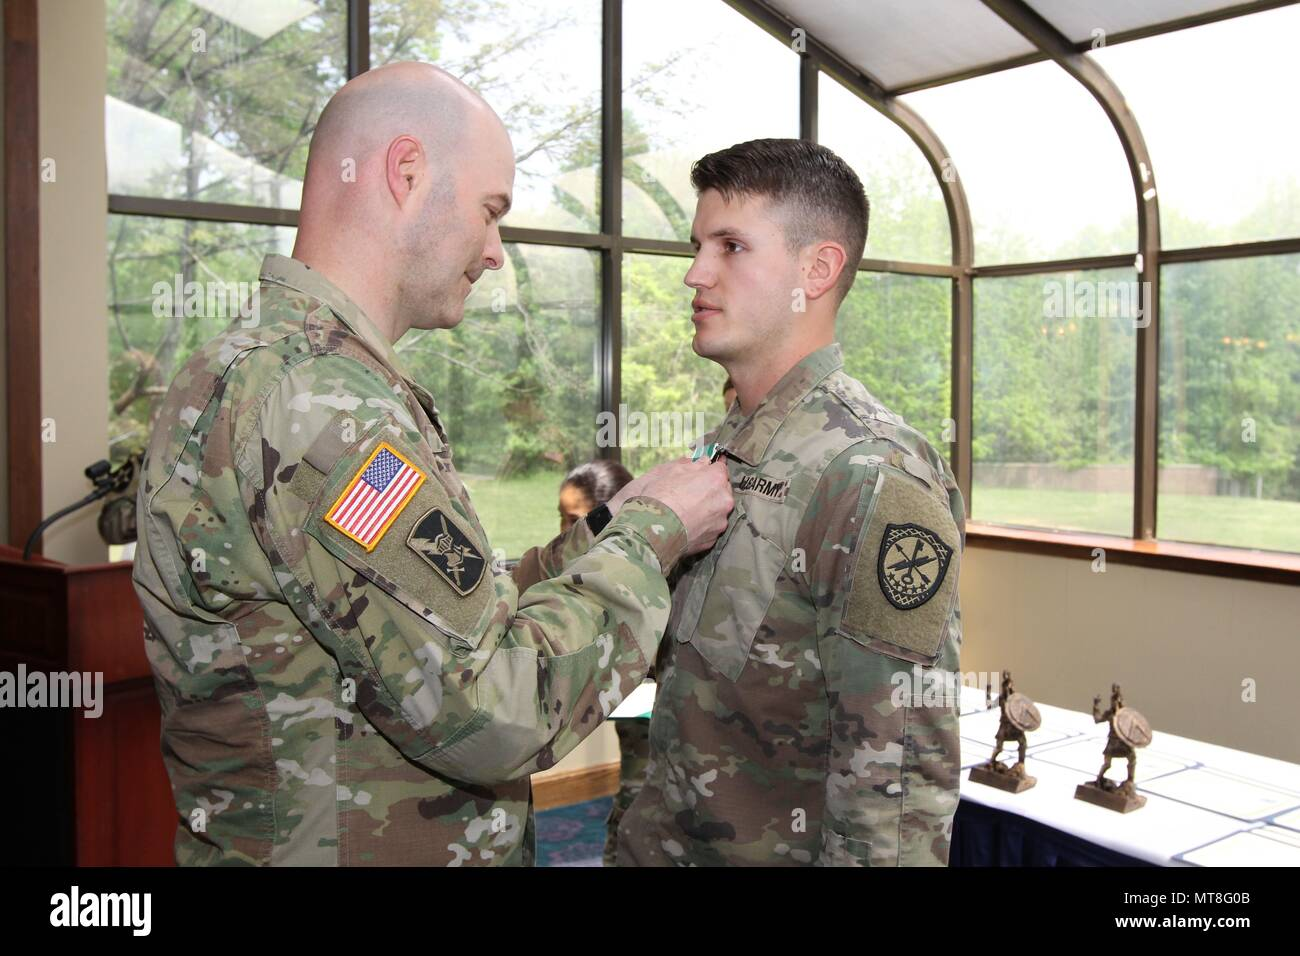 Fort George G Meade Md Spc Alexander Musarra Right Company B 782nd Military Intelligence Mi Battalion Cyber 780th Mi Brigade Cyber Receives The Army Commendation Medal From Col Rhett Cox Commander